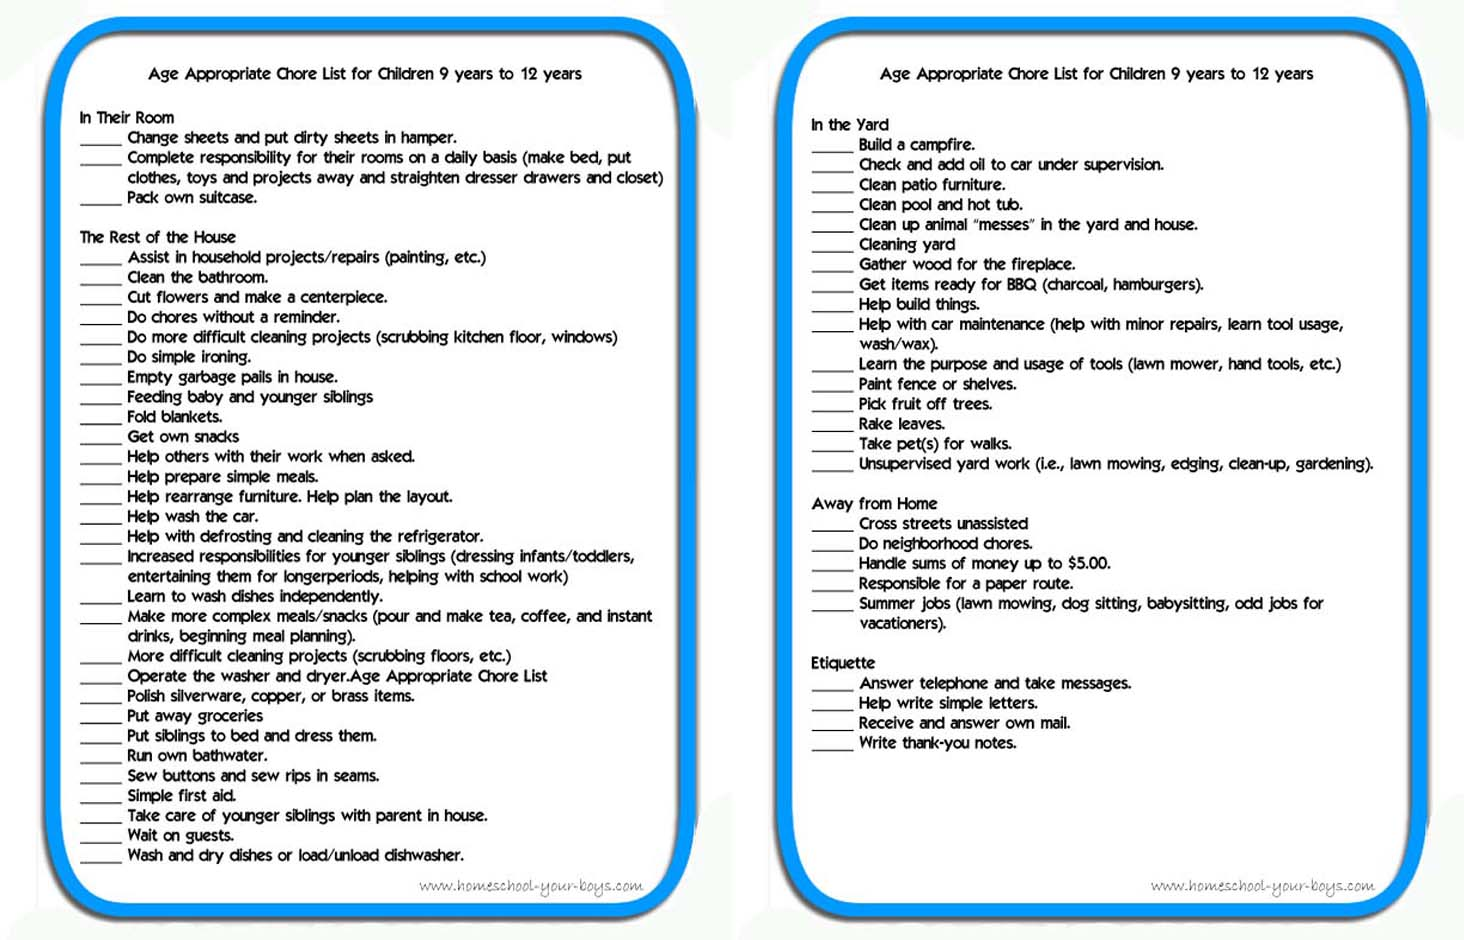 9 YO 10YO 11 FREE Printable Age Appropriate Chore List for Children 9 years to 12 years